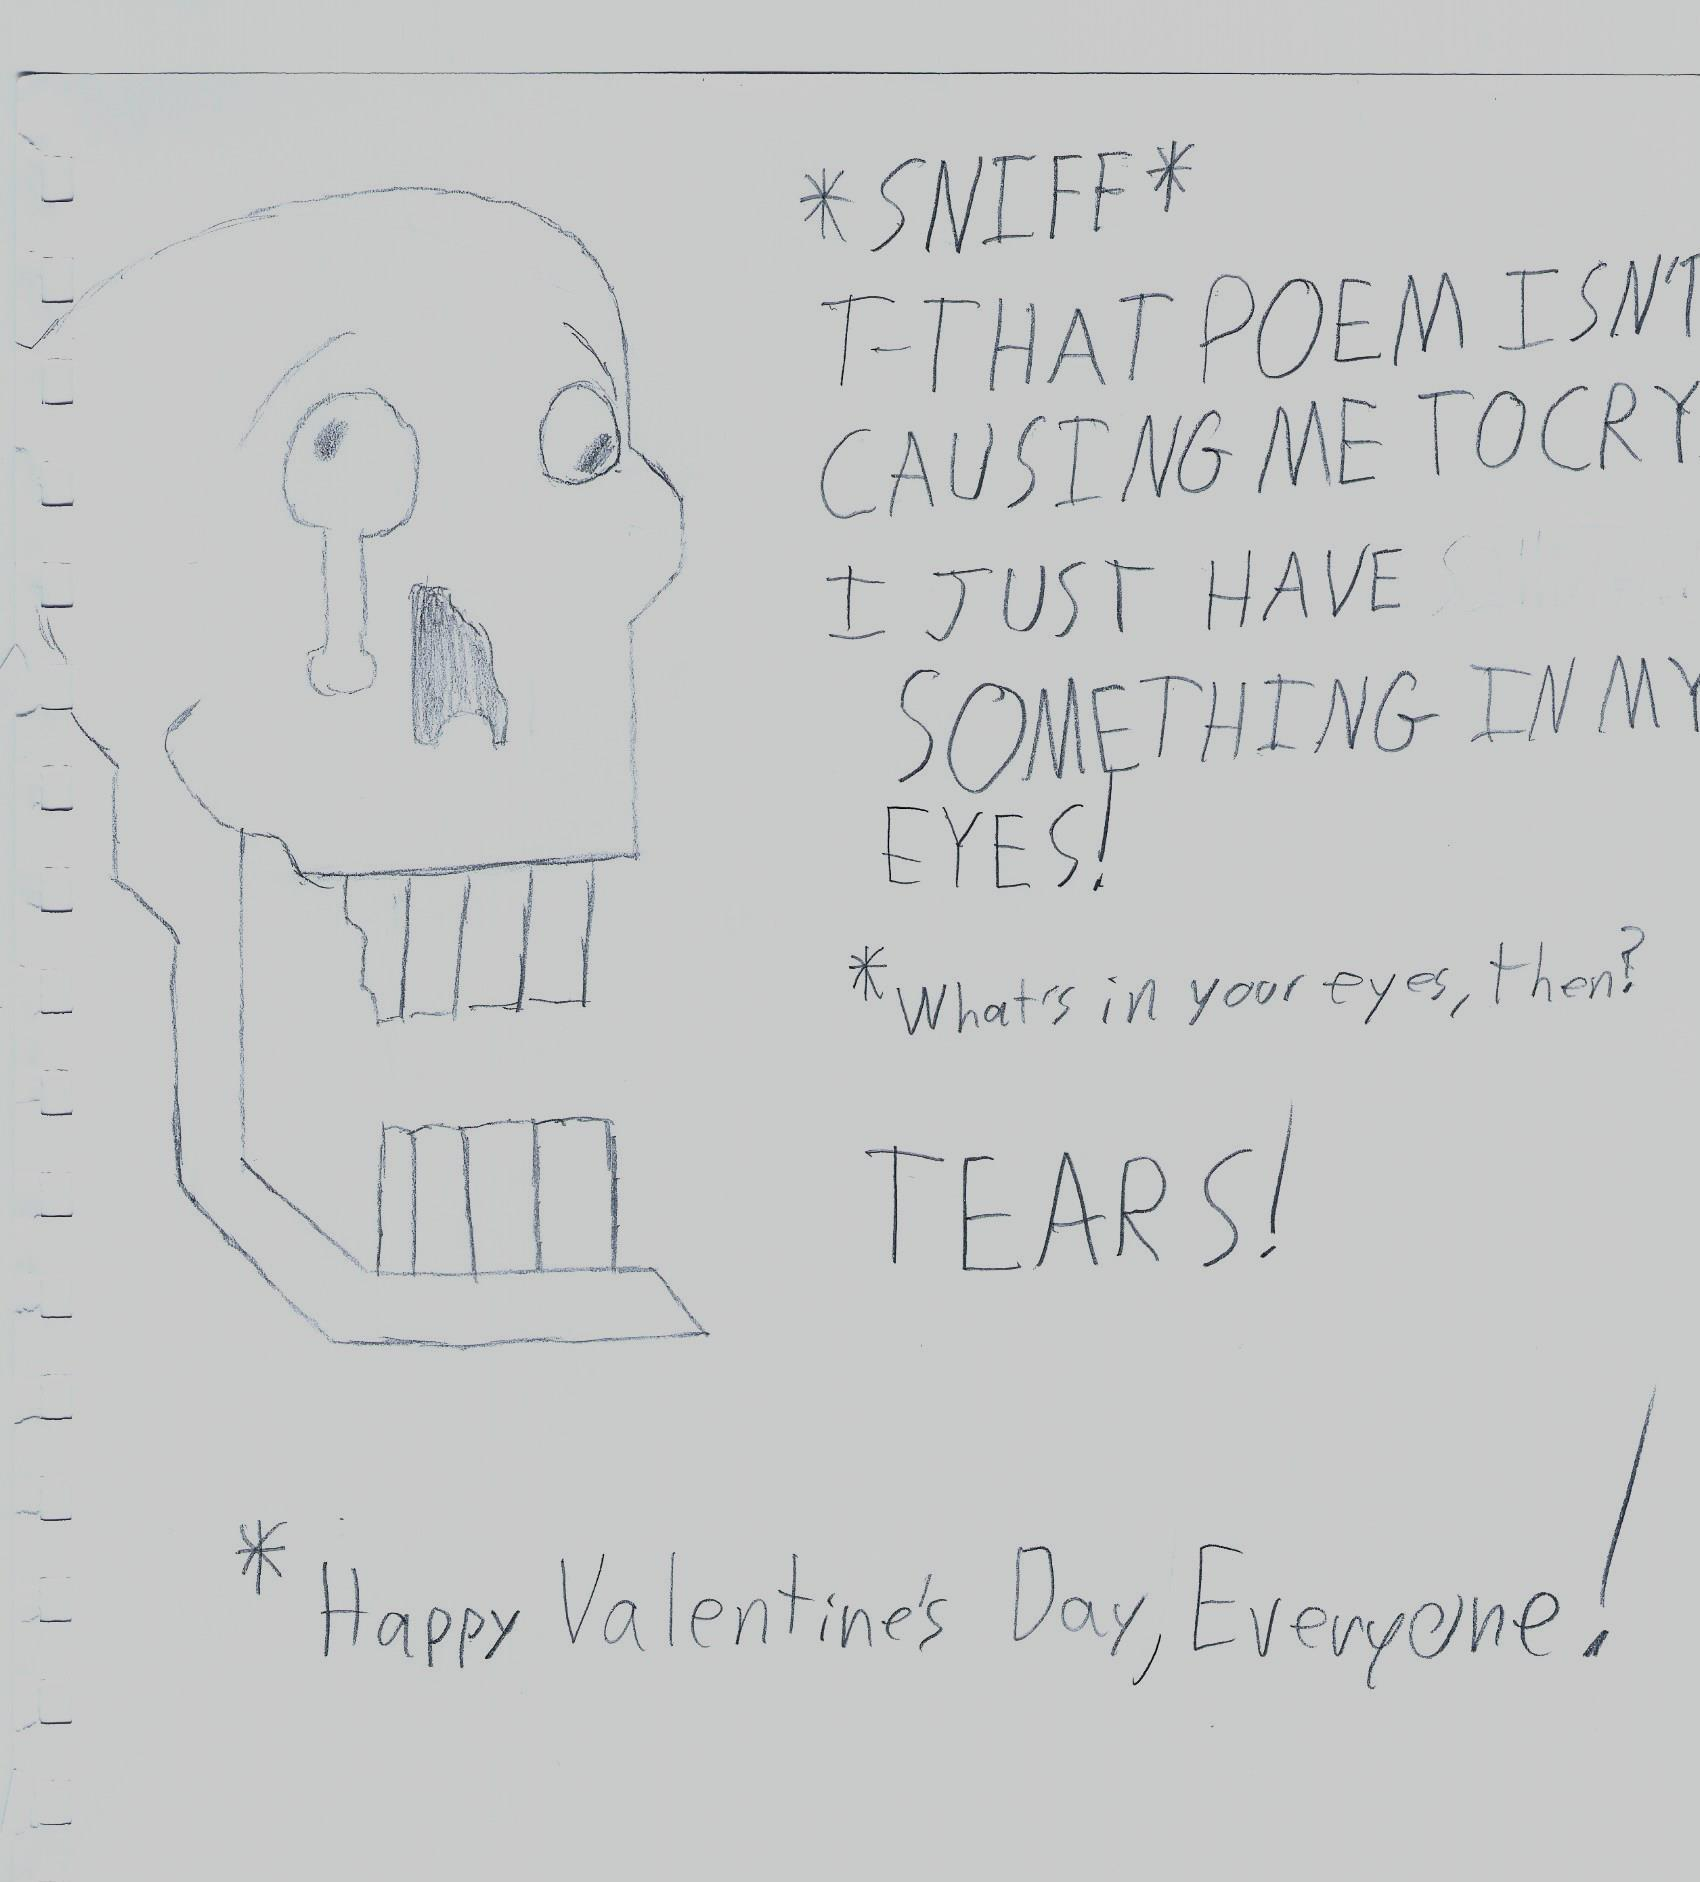 Papyruss Valentine Letter 44  Undertale  Know Your Meme